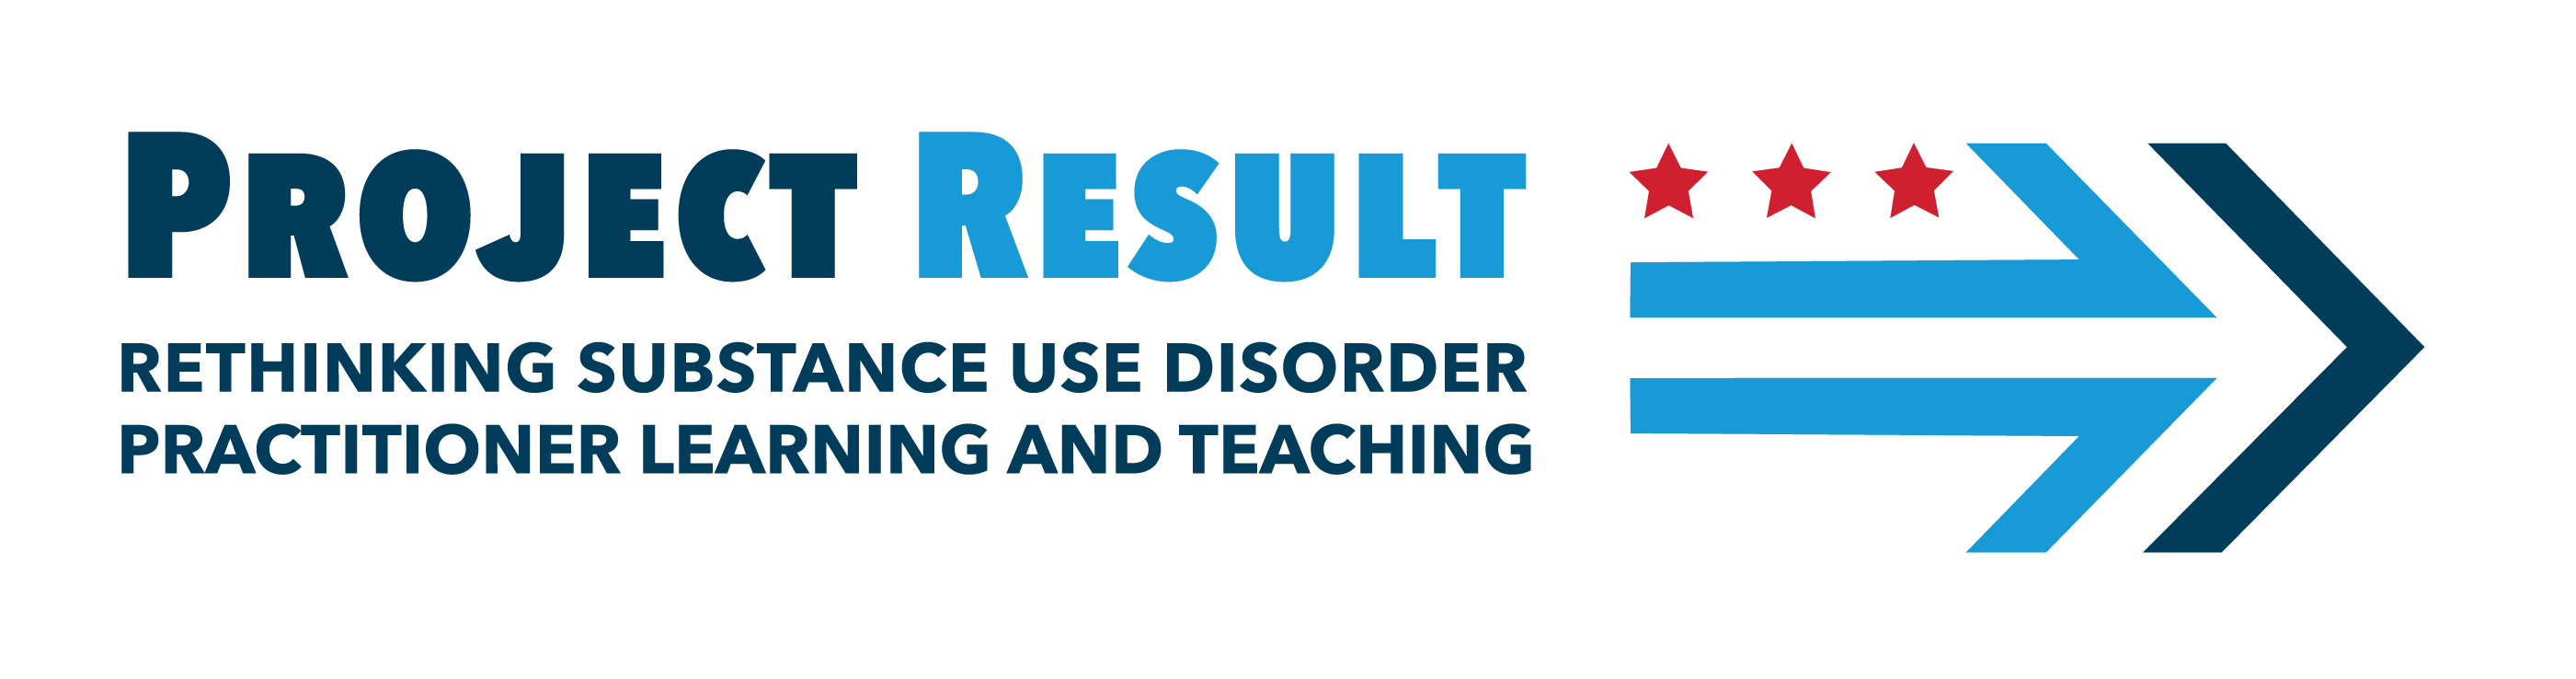 Project Result: Rethinking Substance Use Disorder Practitioner Learning and Teaching